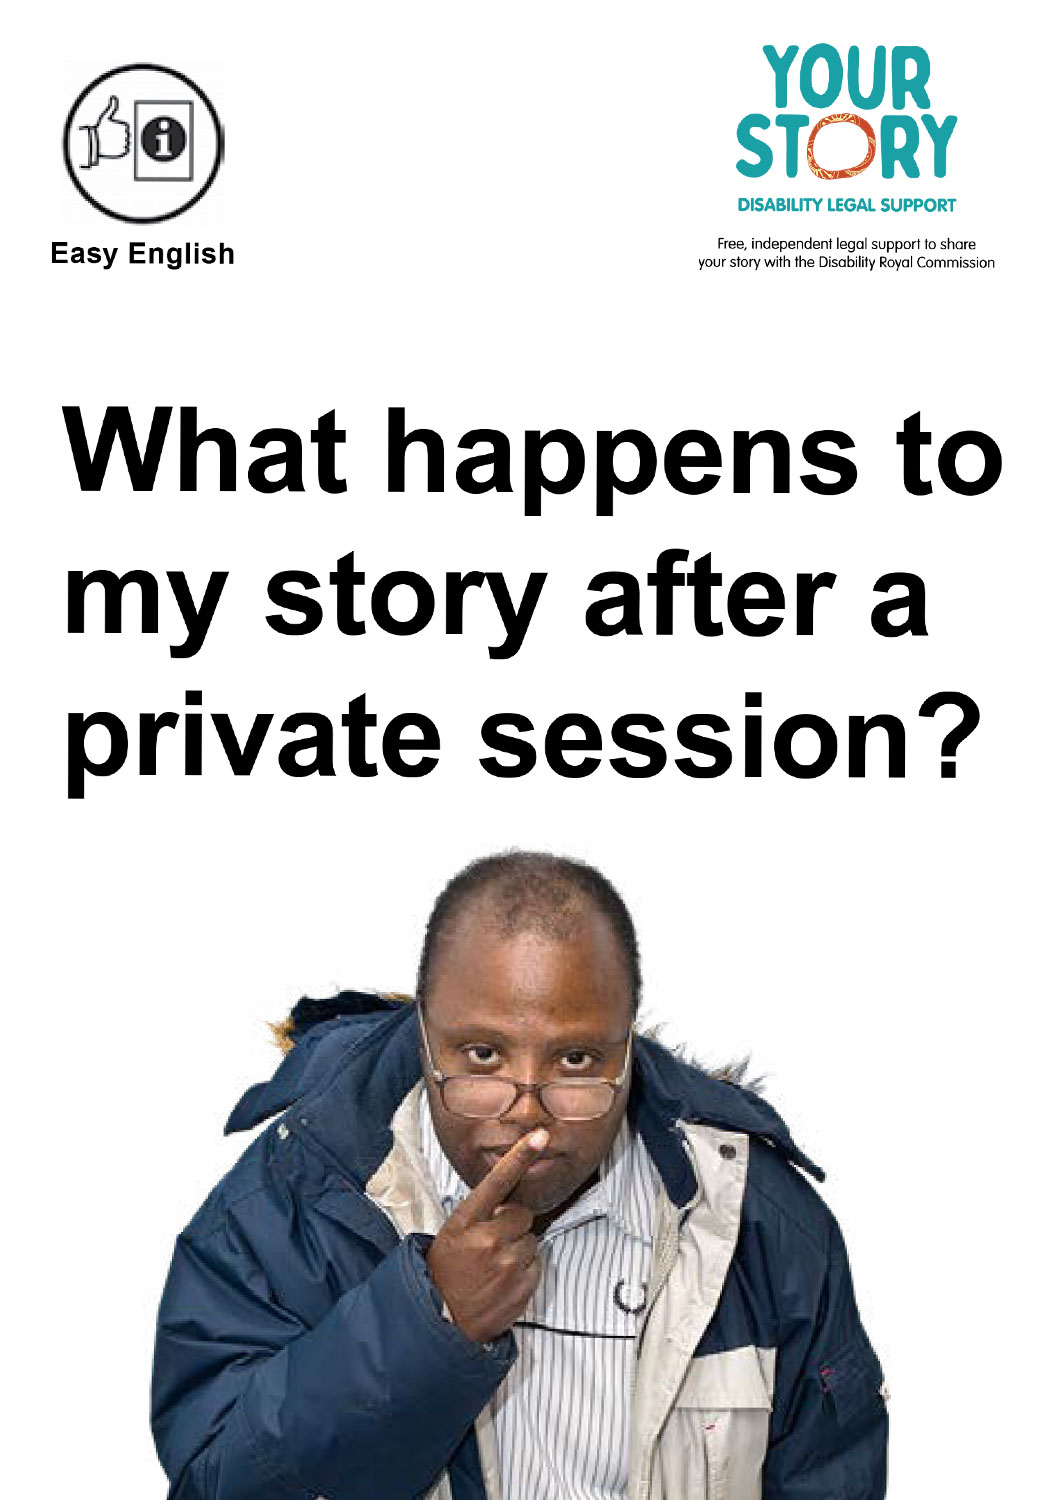 What happens to my story after a private session